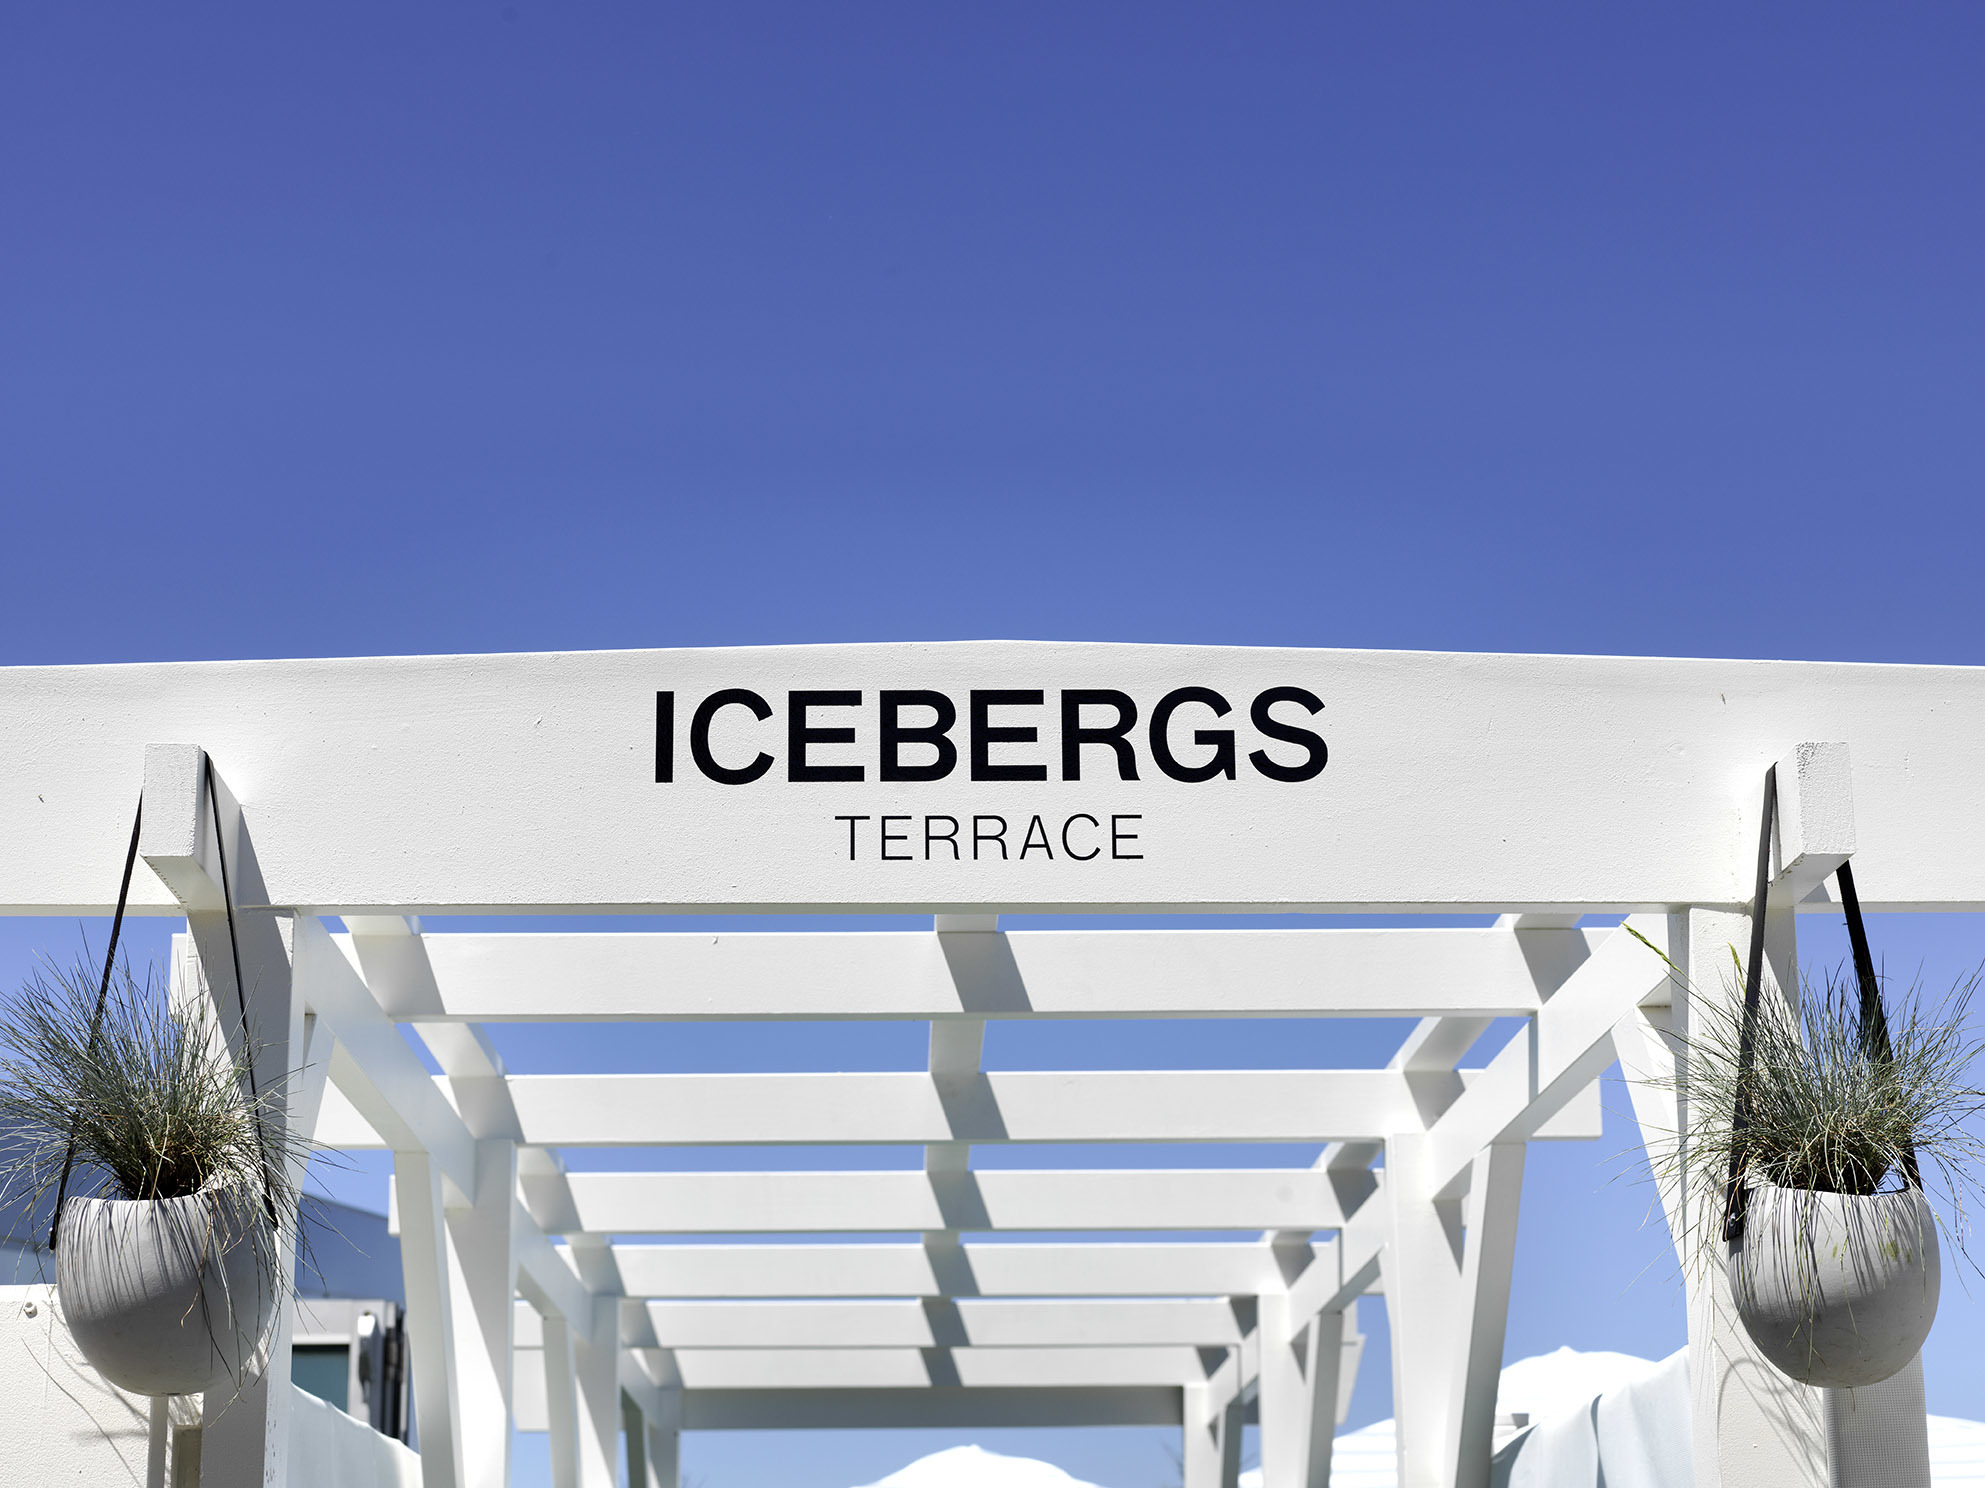 Icebergs Terrace Is Open Now Daily Next To Dining Room And Bar 1 Notts Ave Bondi 2026